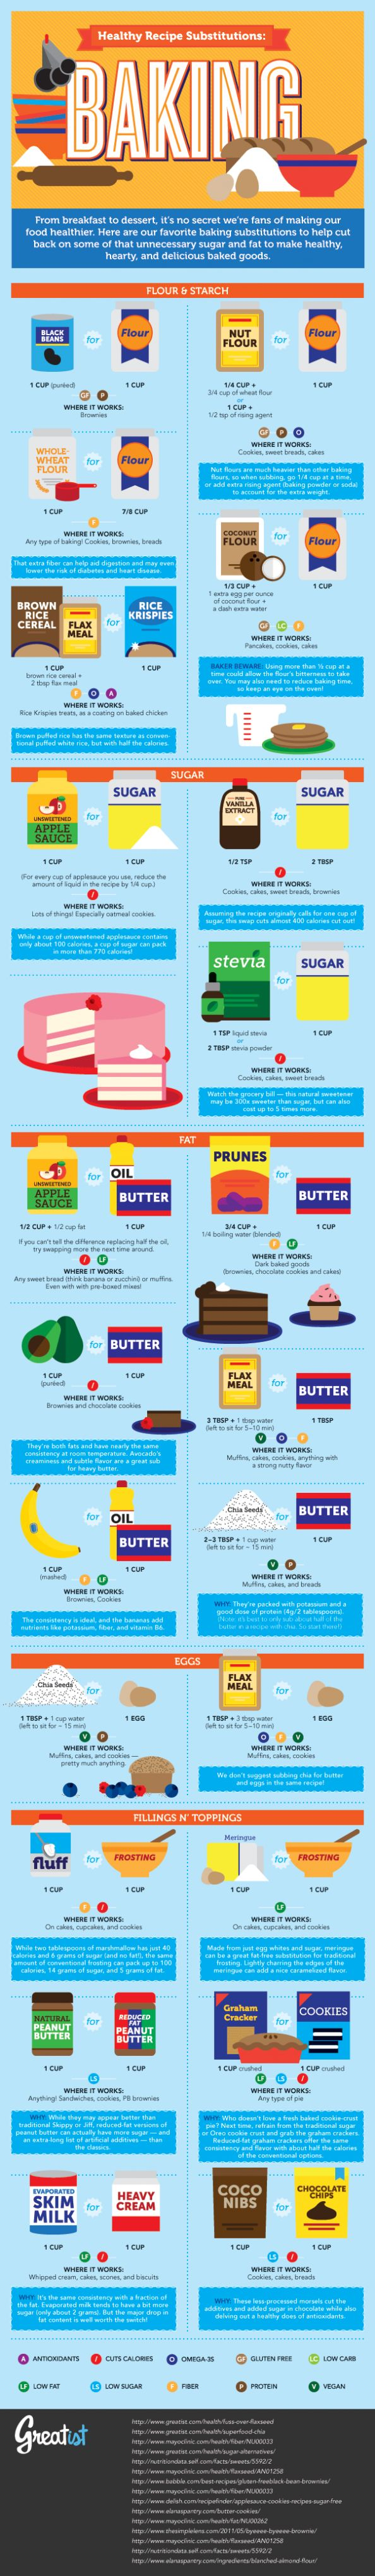 Healthy Recipe Substitutions: Baking Infographic